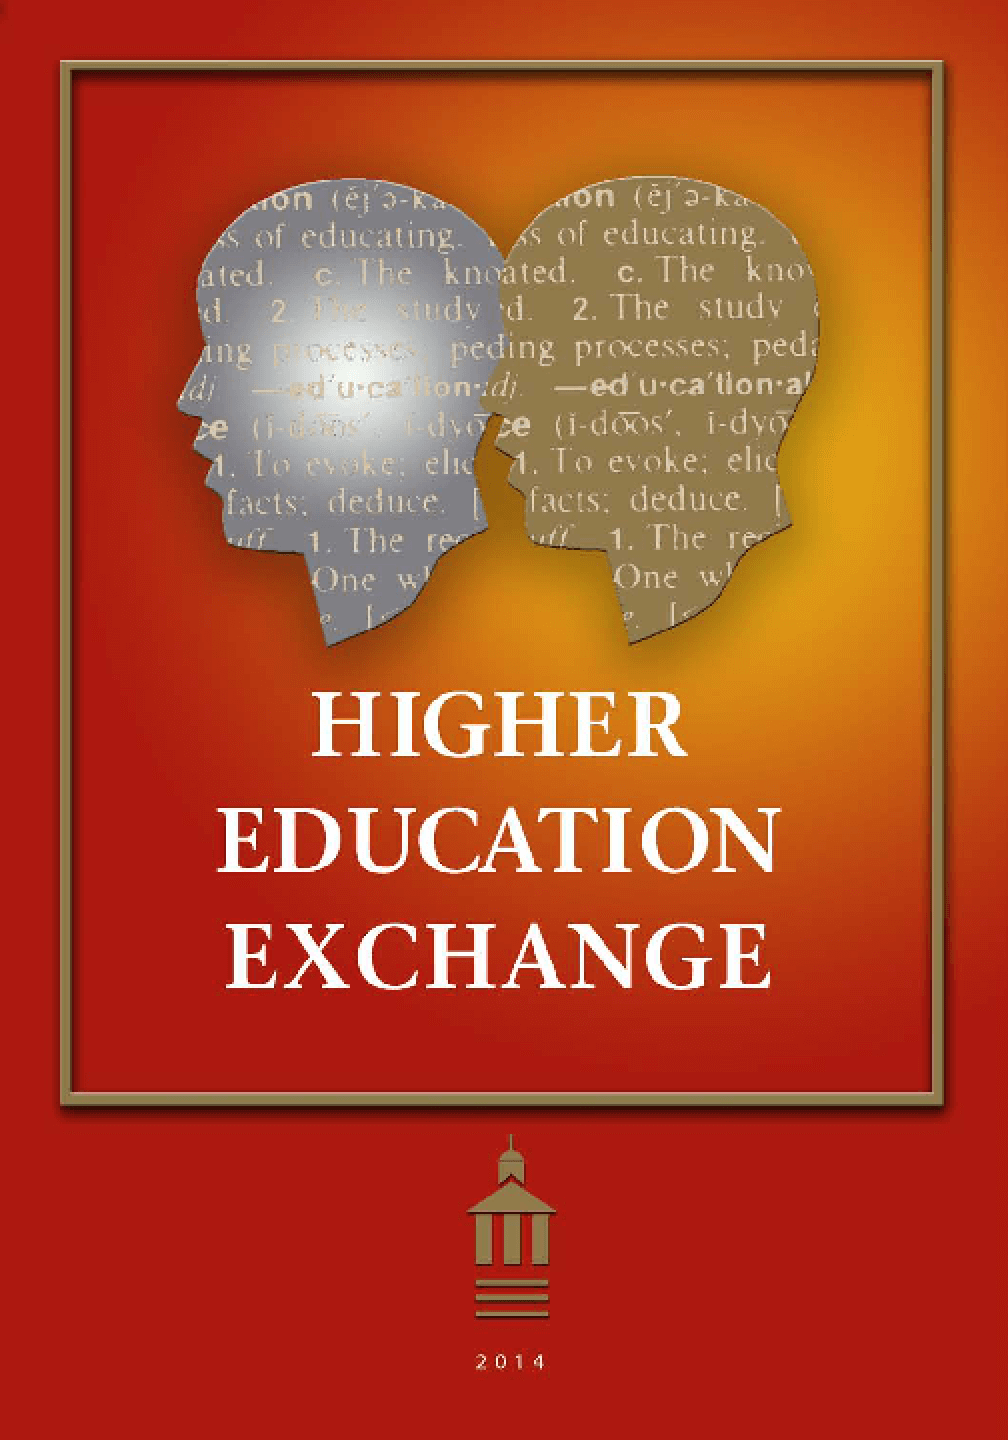 Higher Education Exchange: 2014